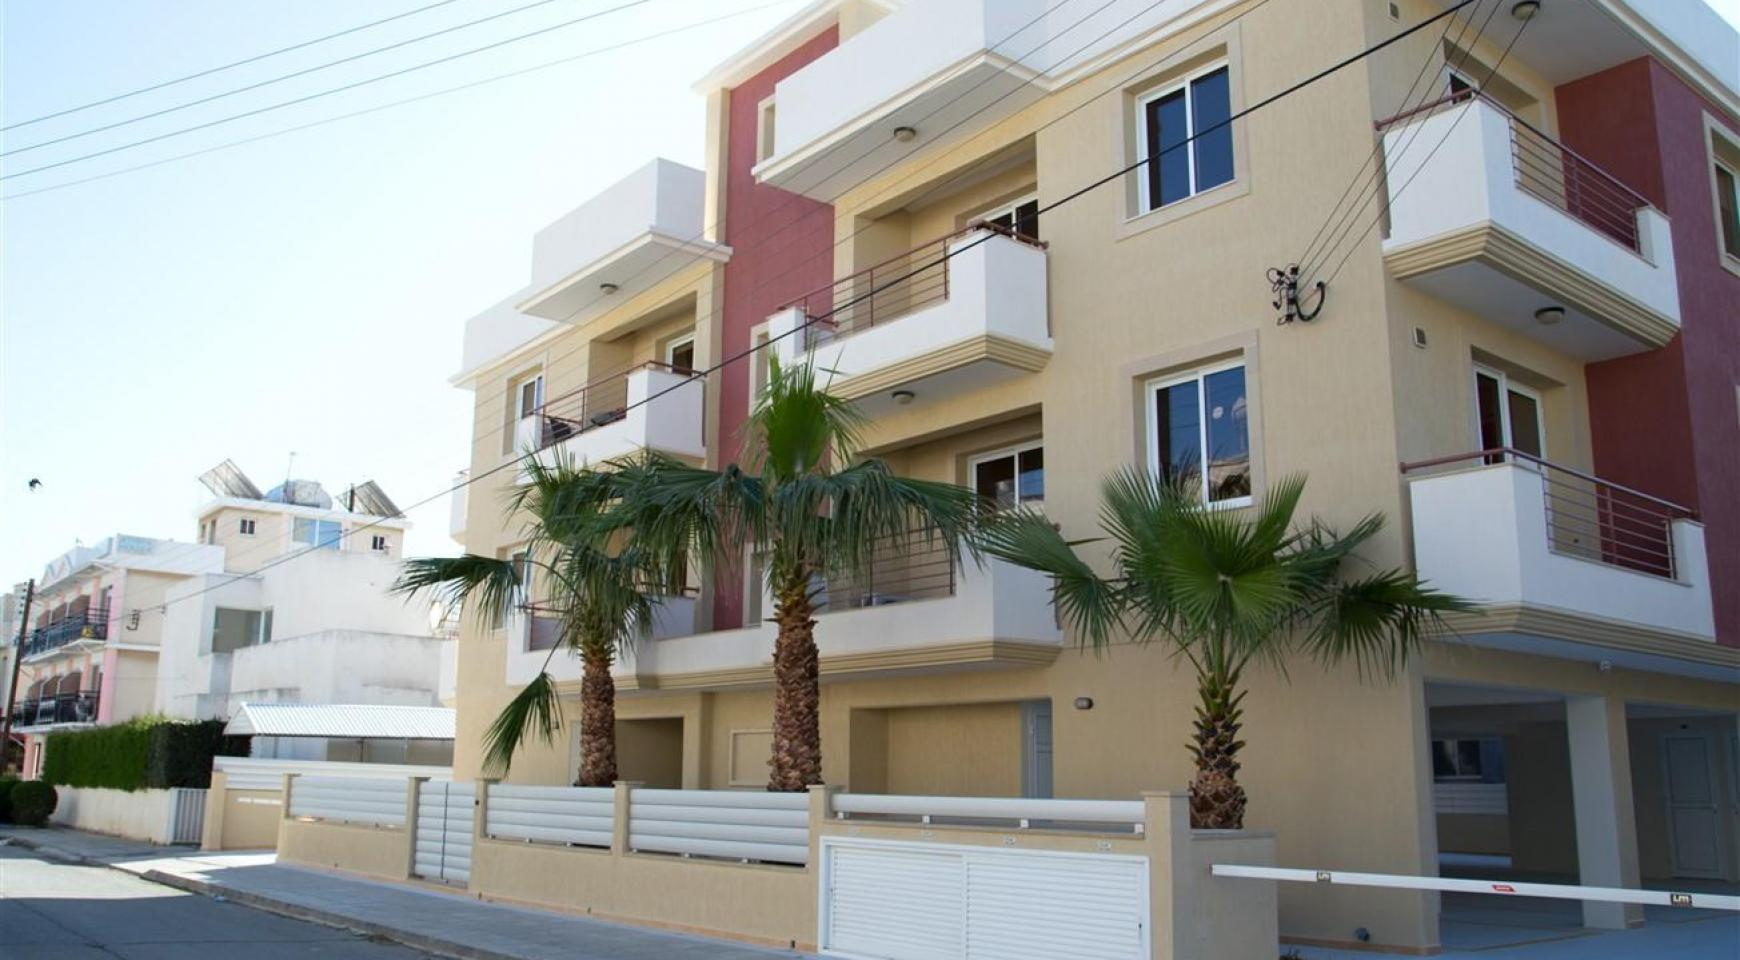 Luxury One Bedroom Apartment Frida 104 in the Tourist Area - 11